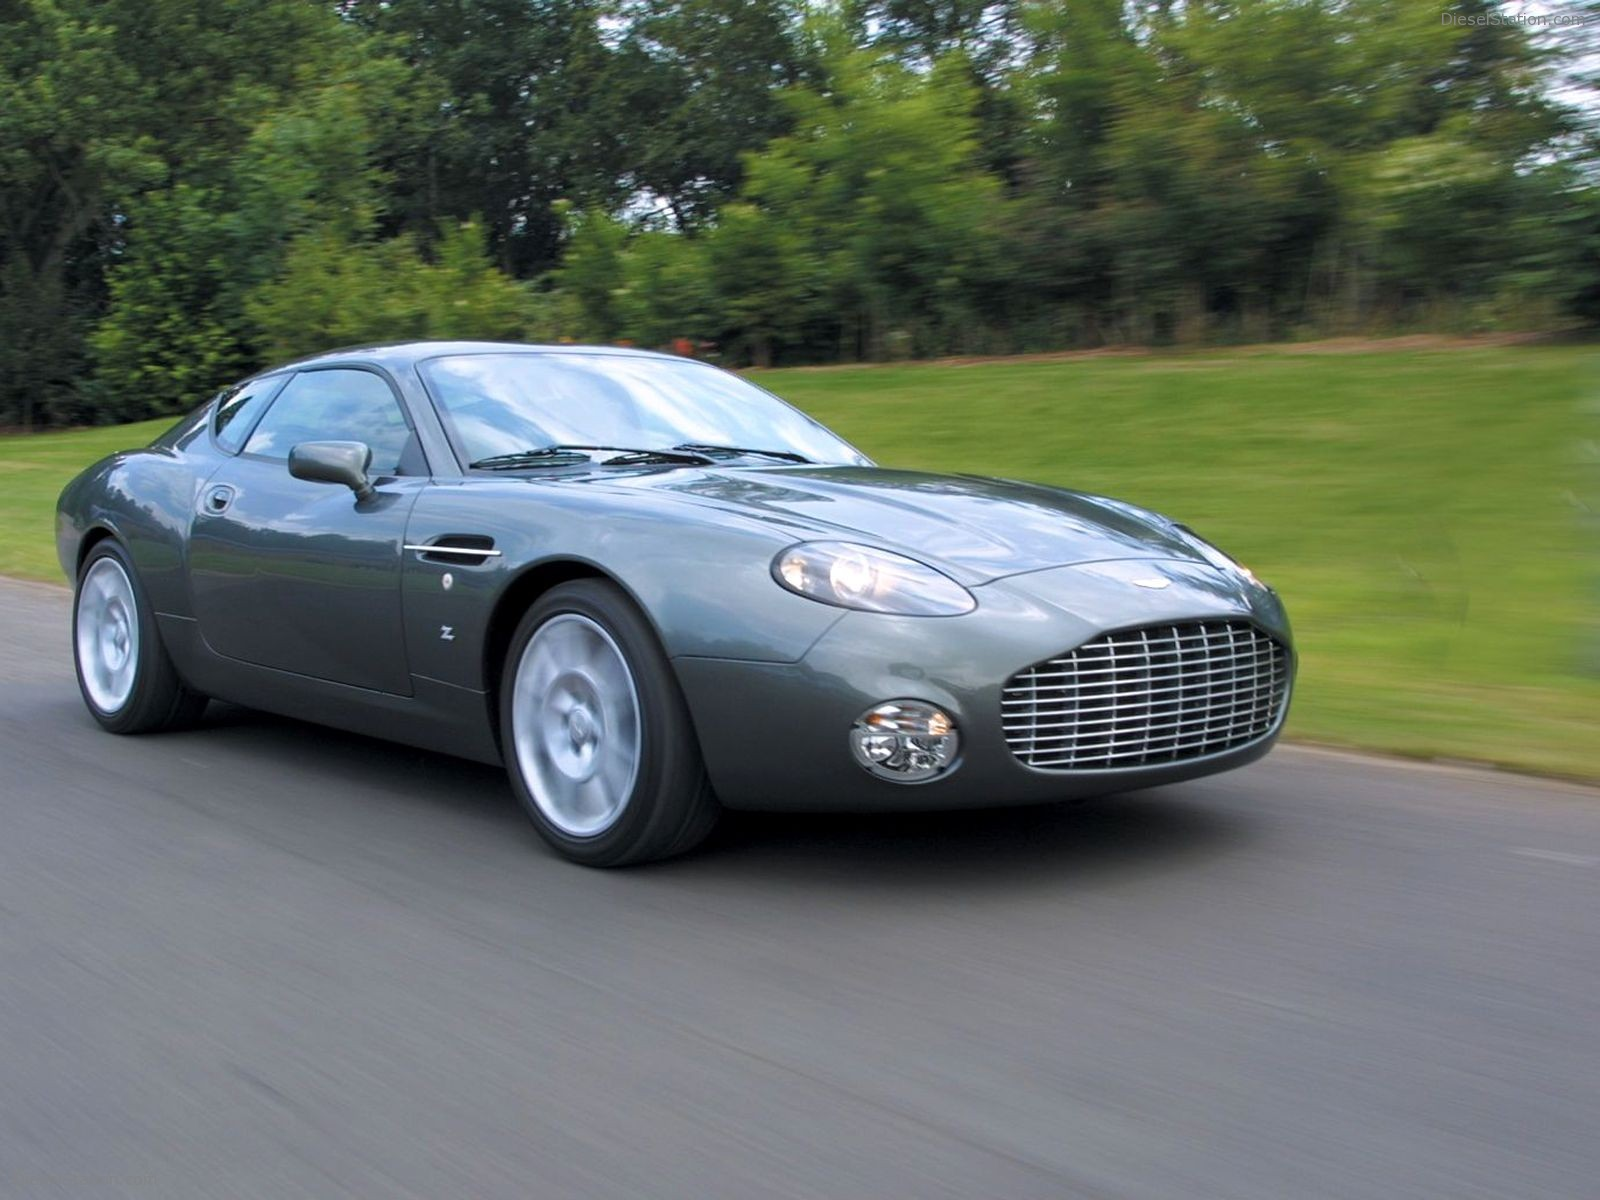 Aston martin db7 photo - 1